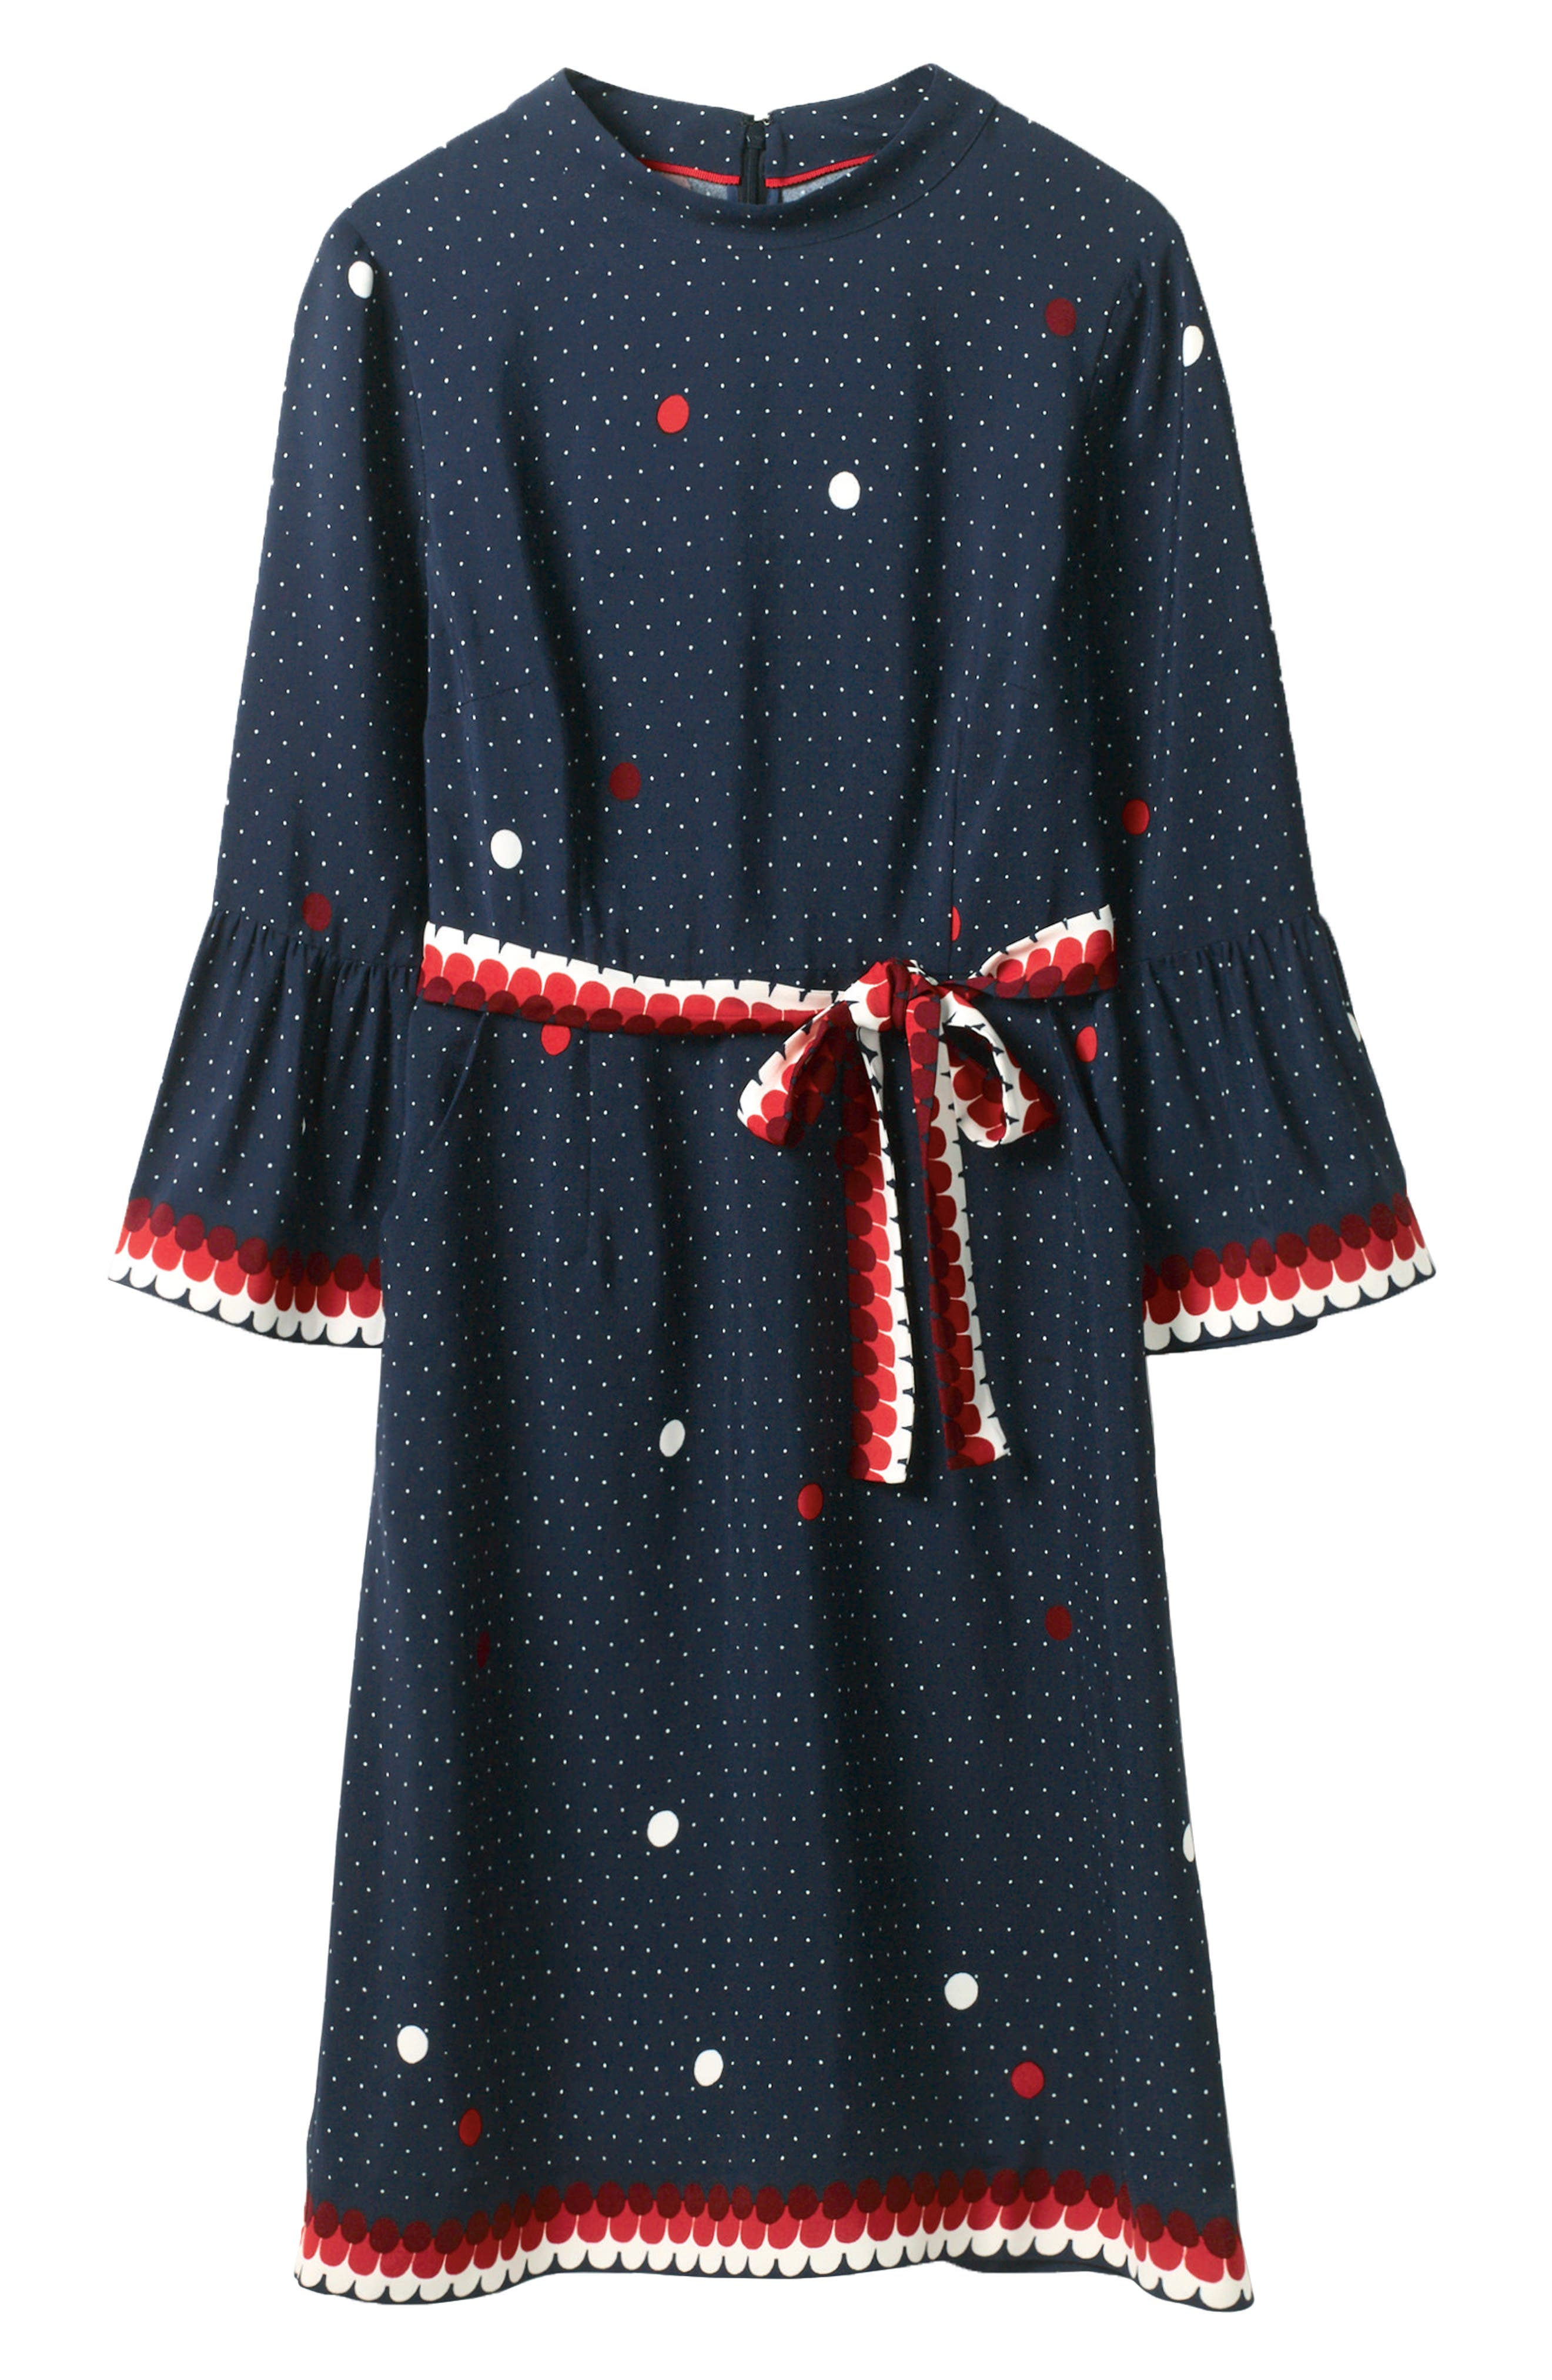 Ruffle Sleeve Polka Dot DRess,                             Alternate thumbnail 6, color,                             Navy/ Spot Border